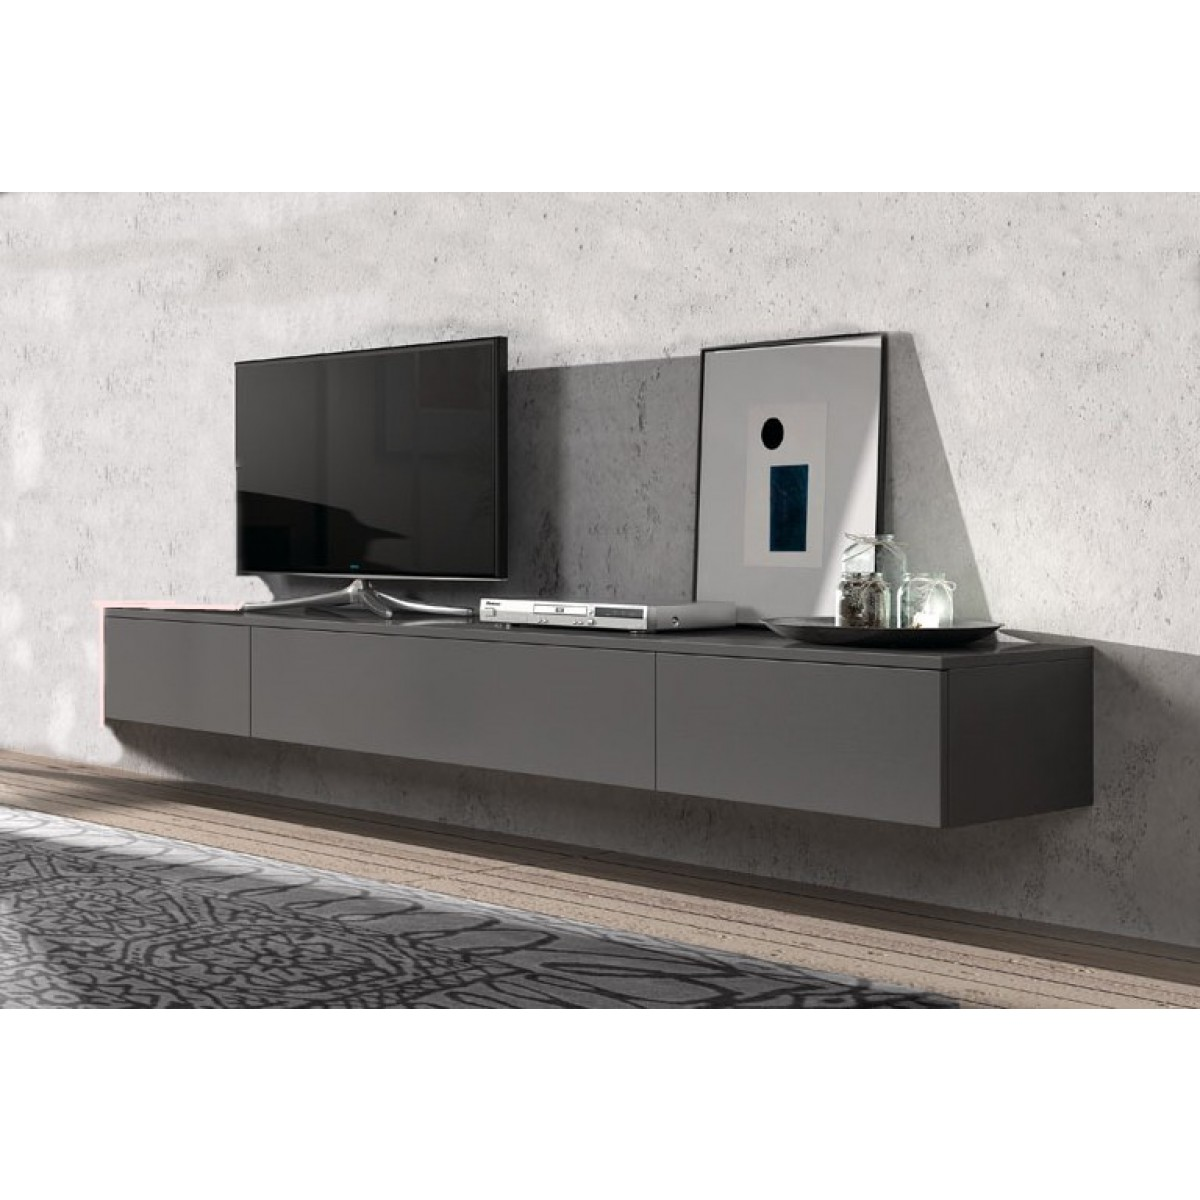 h ngend tv lowboard float 221 cm i live design preisg nstig online moebel kaufen. Black Bedroom Furniture Sets. Home Design Ideas